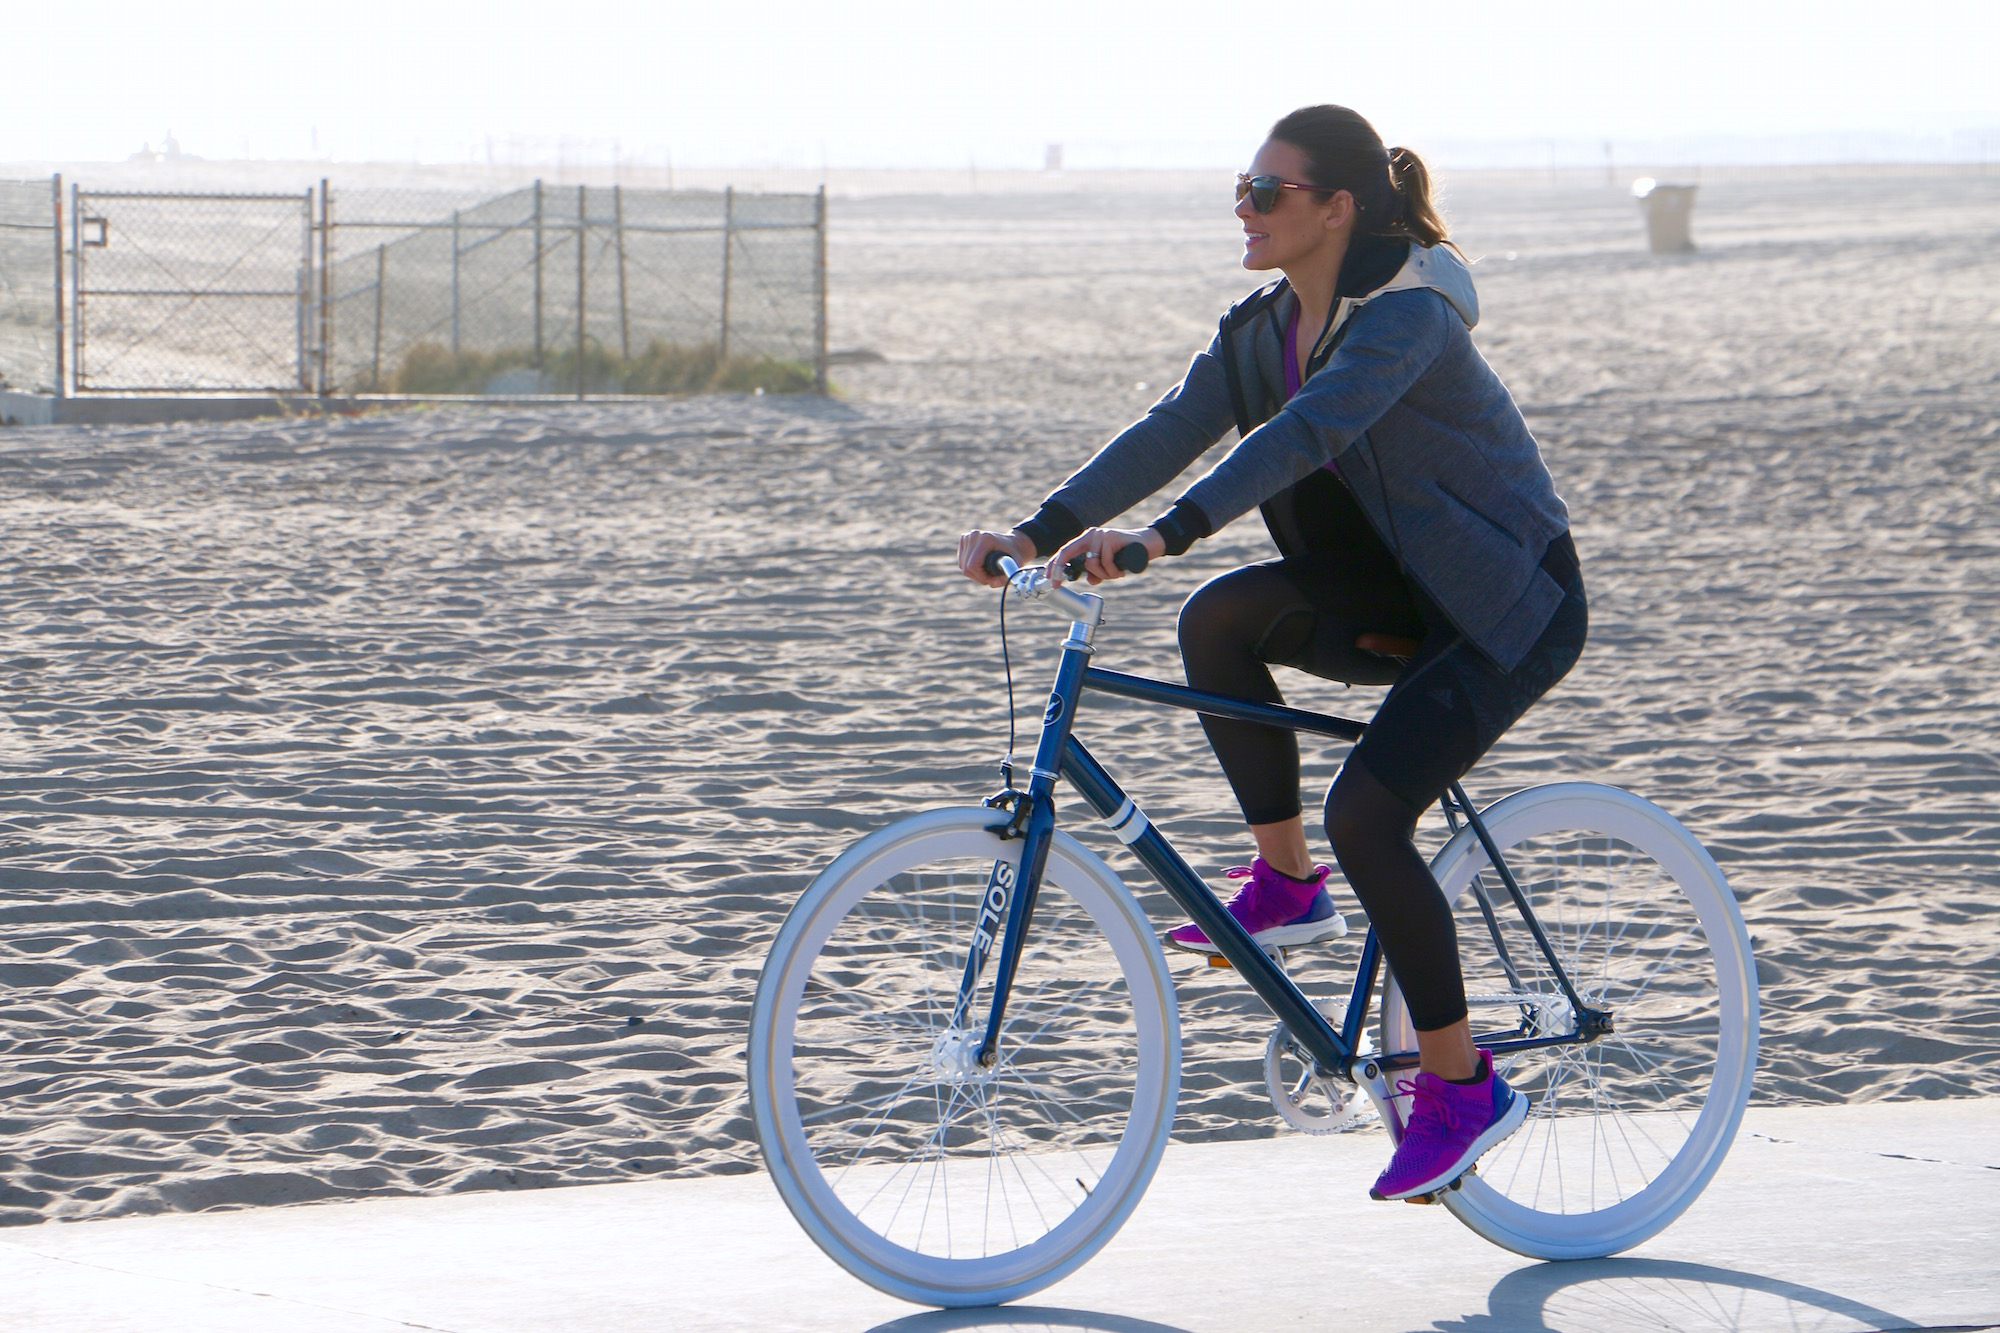 Santa Monica Beach Bike Rides - Sole Bikes - The Whaler